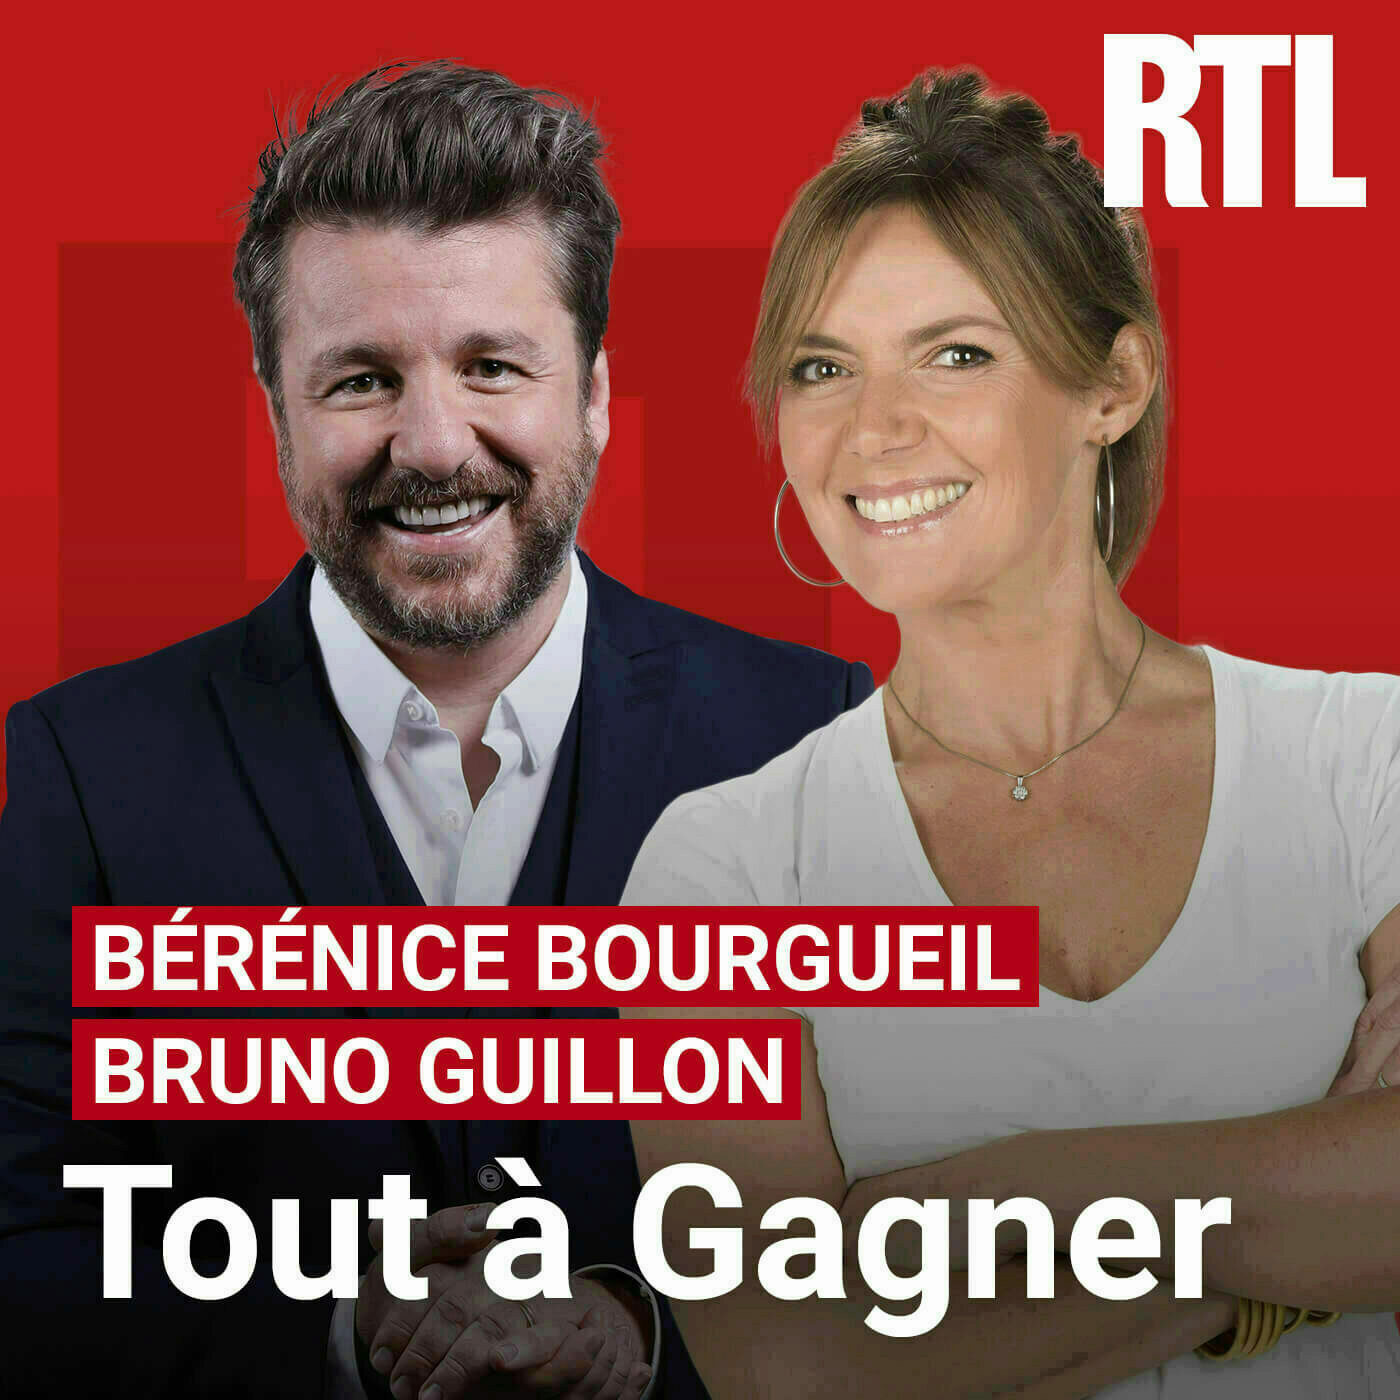 Image 1: Tout a gagner